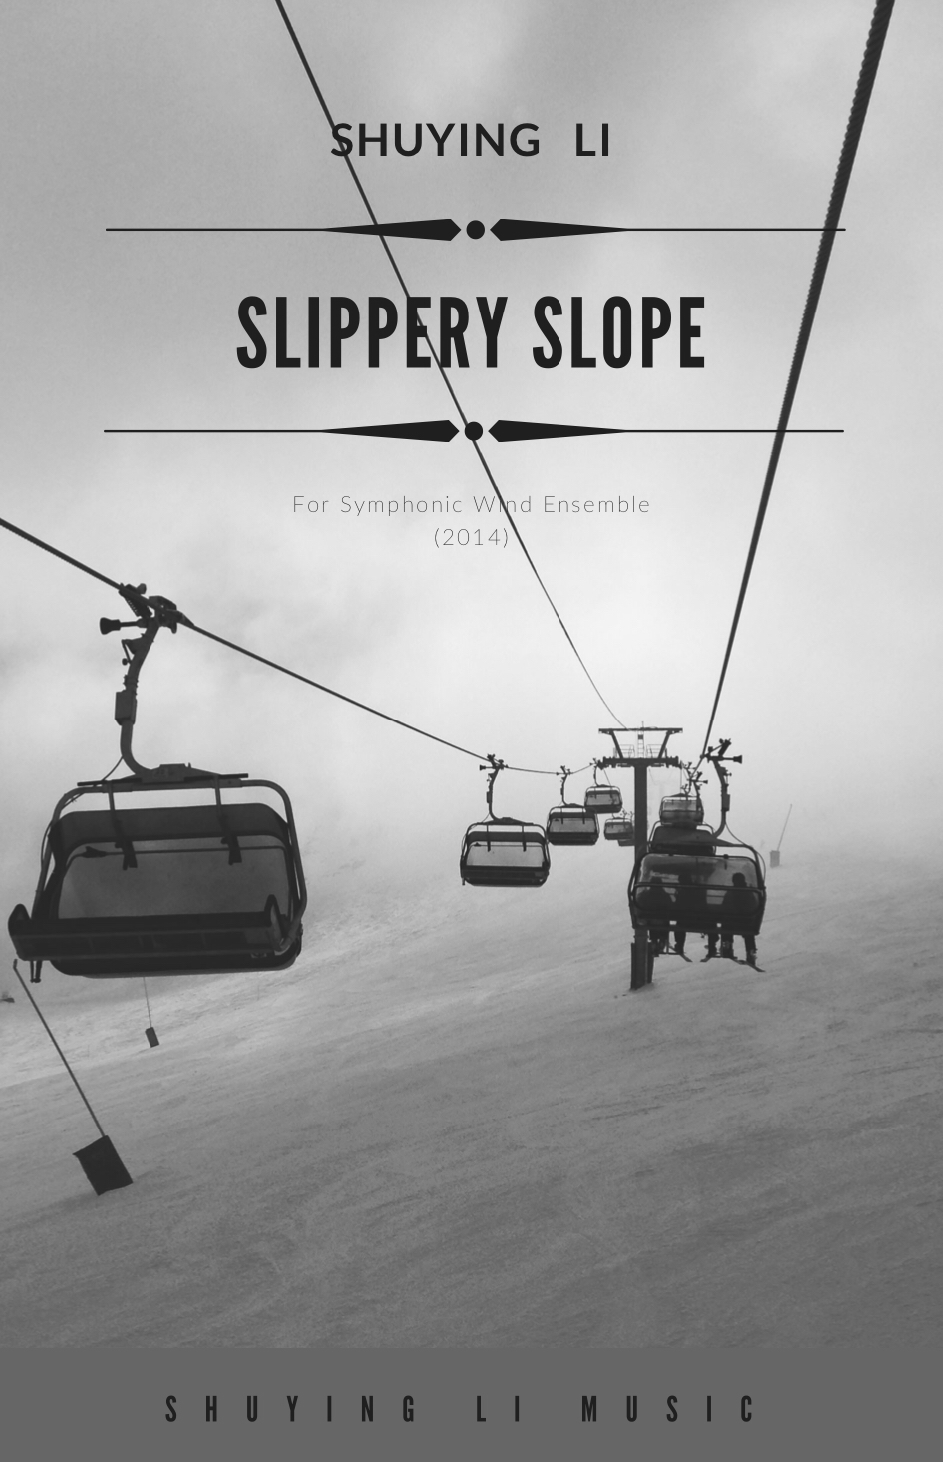 Slippery Slope by Shuying Li